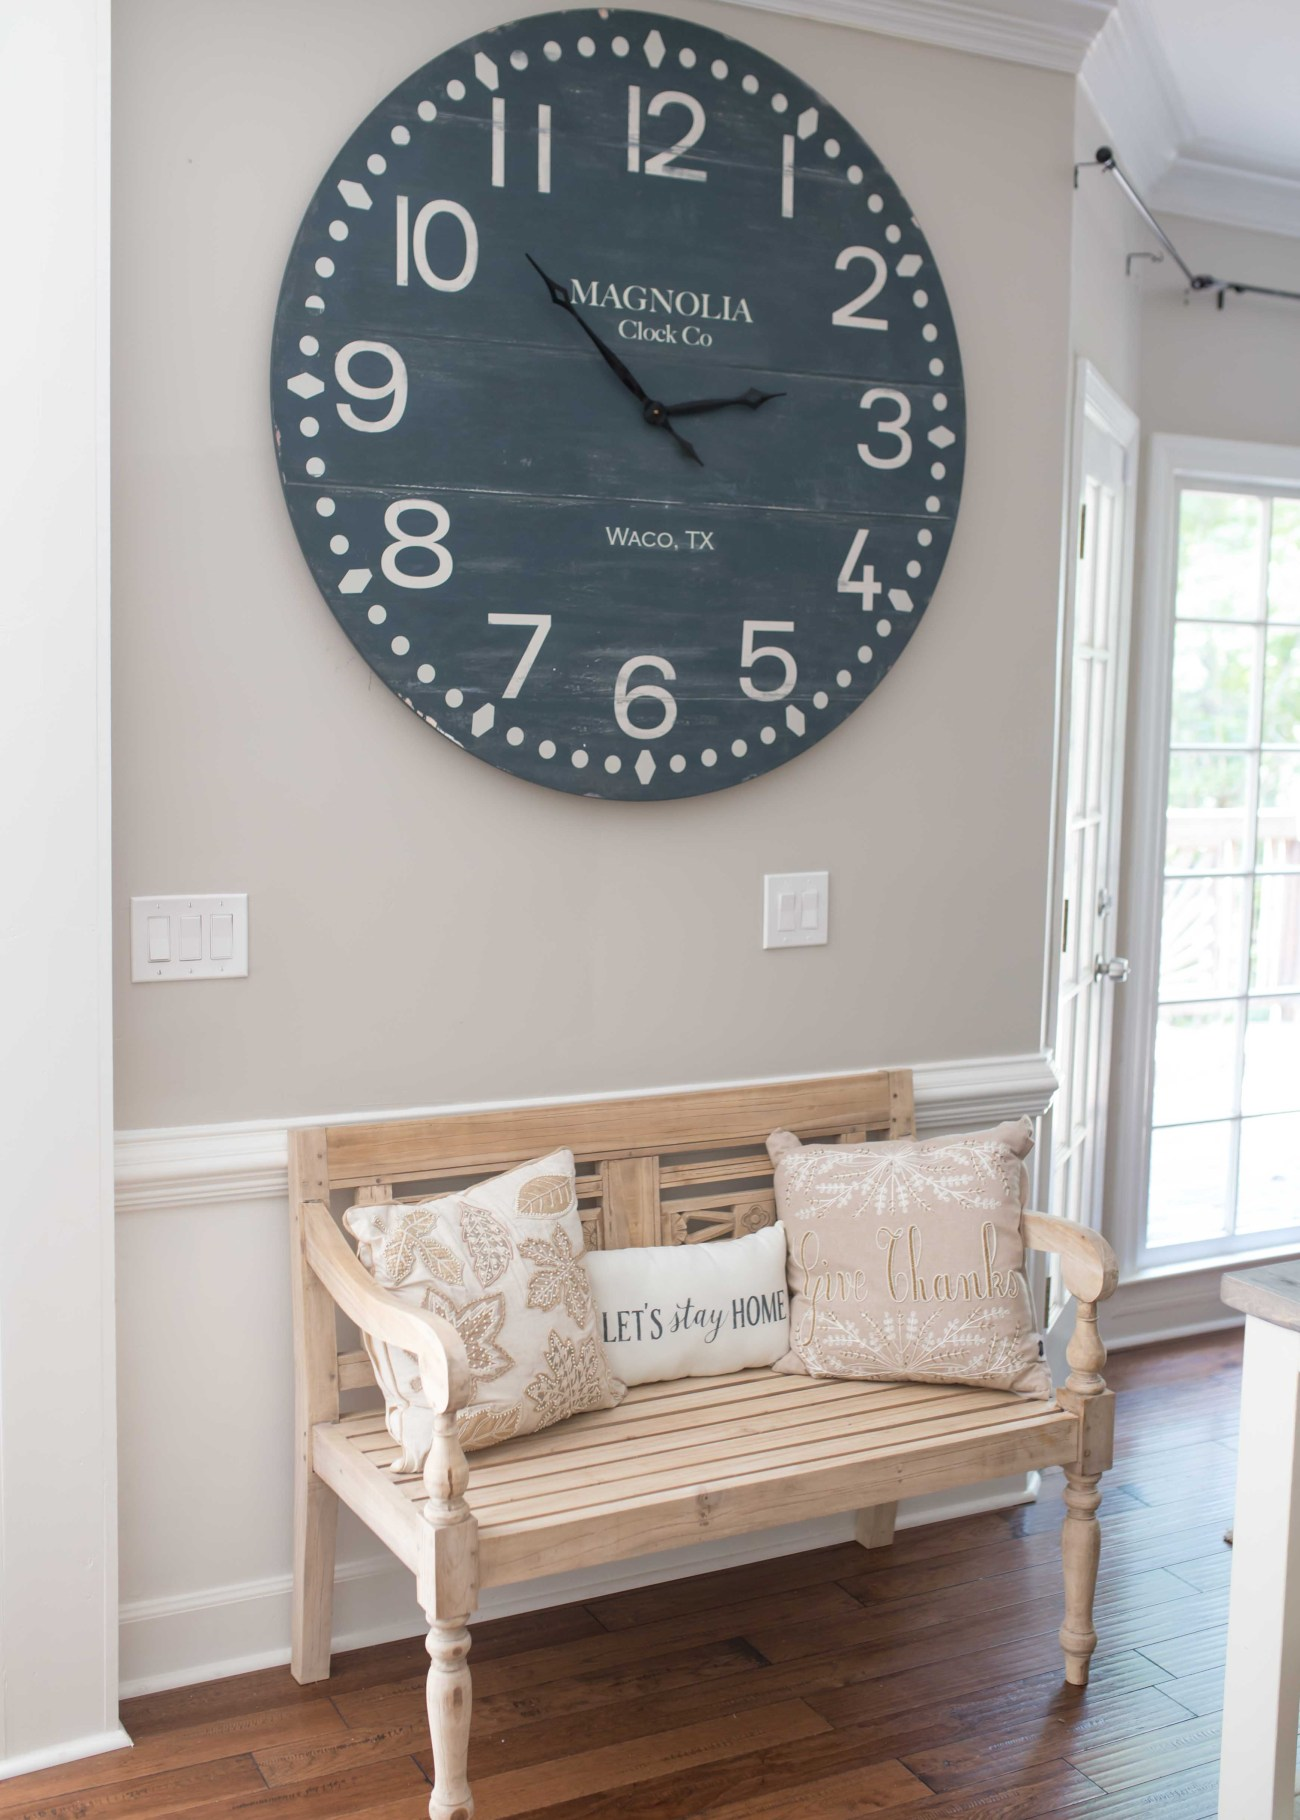 home entry bench Magnolia clock